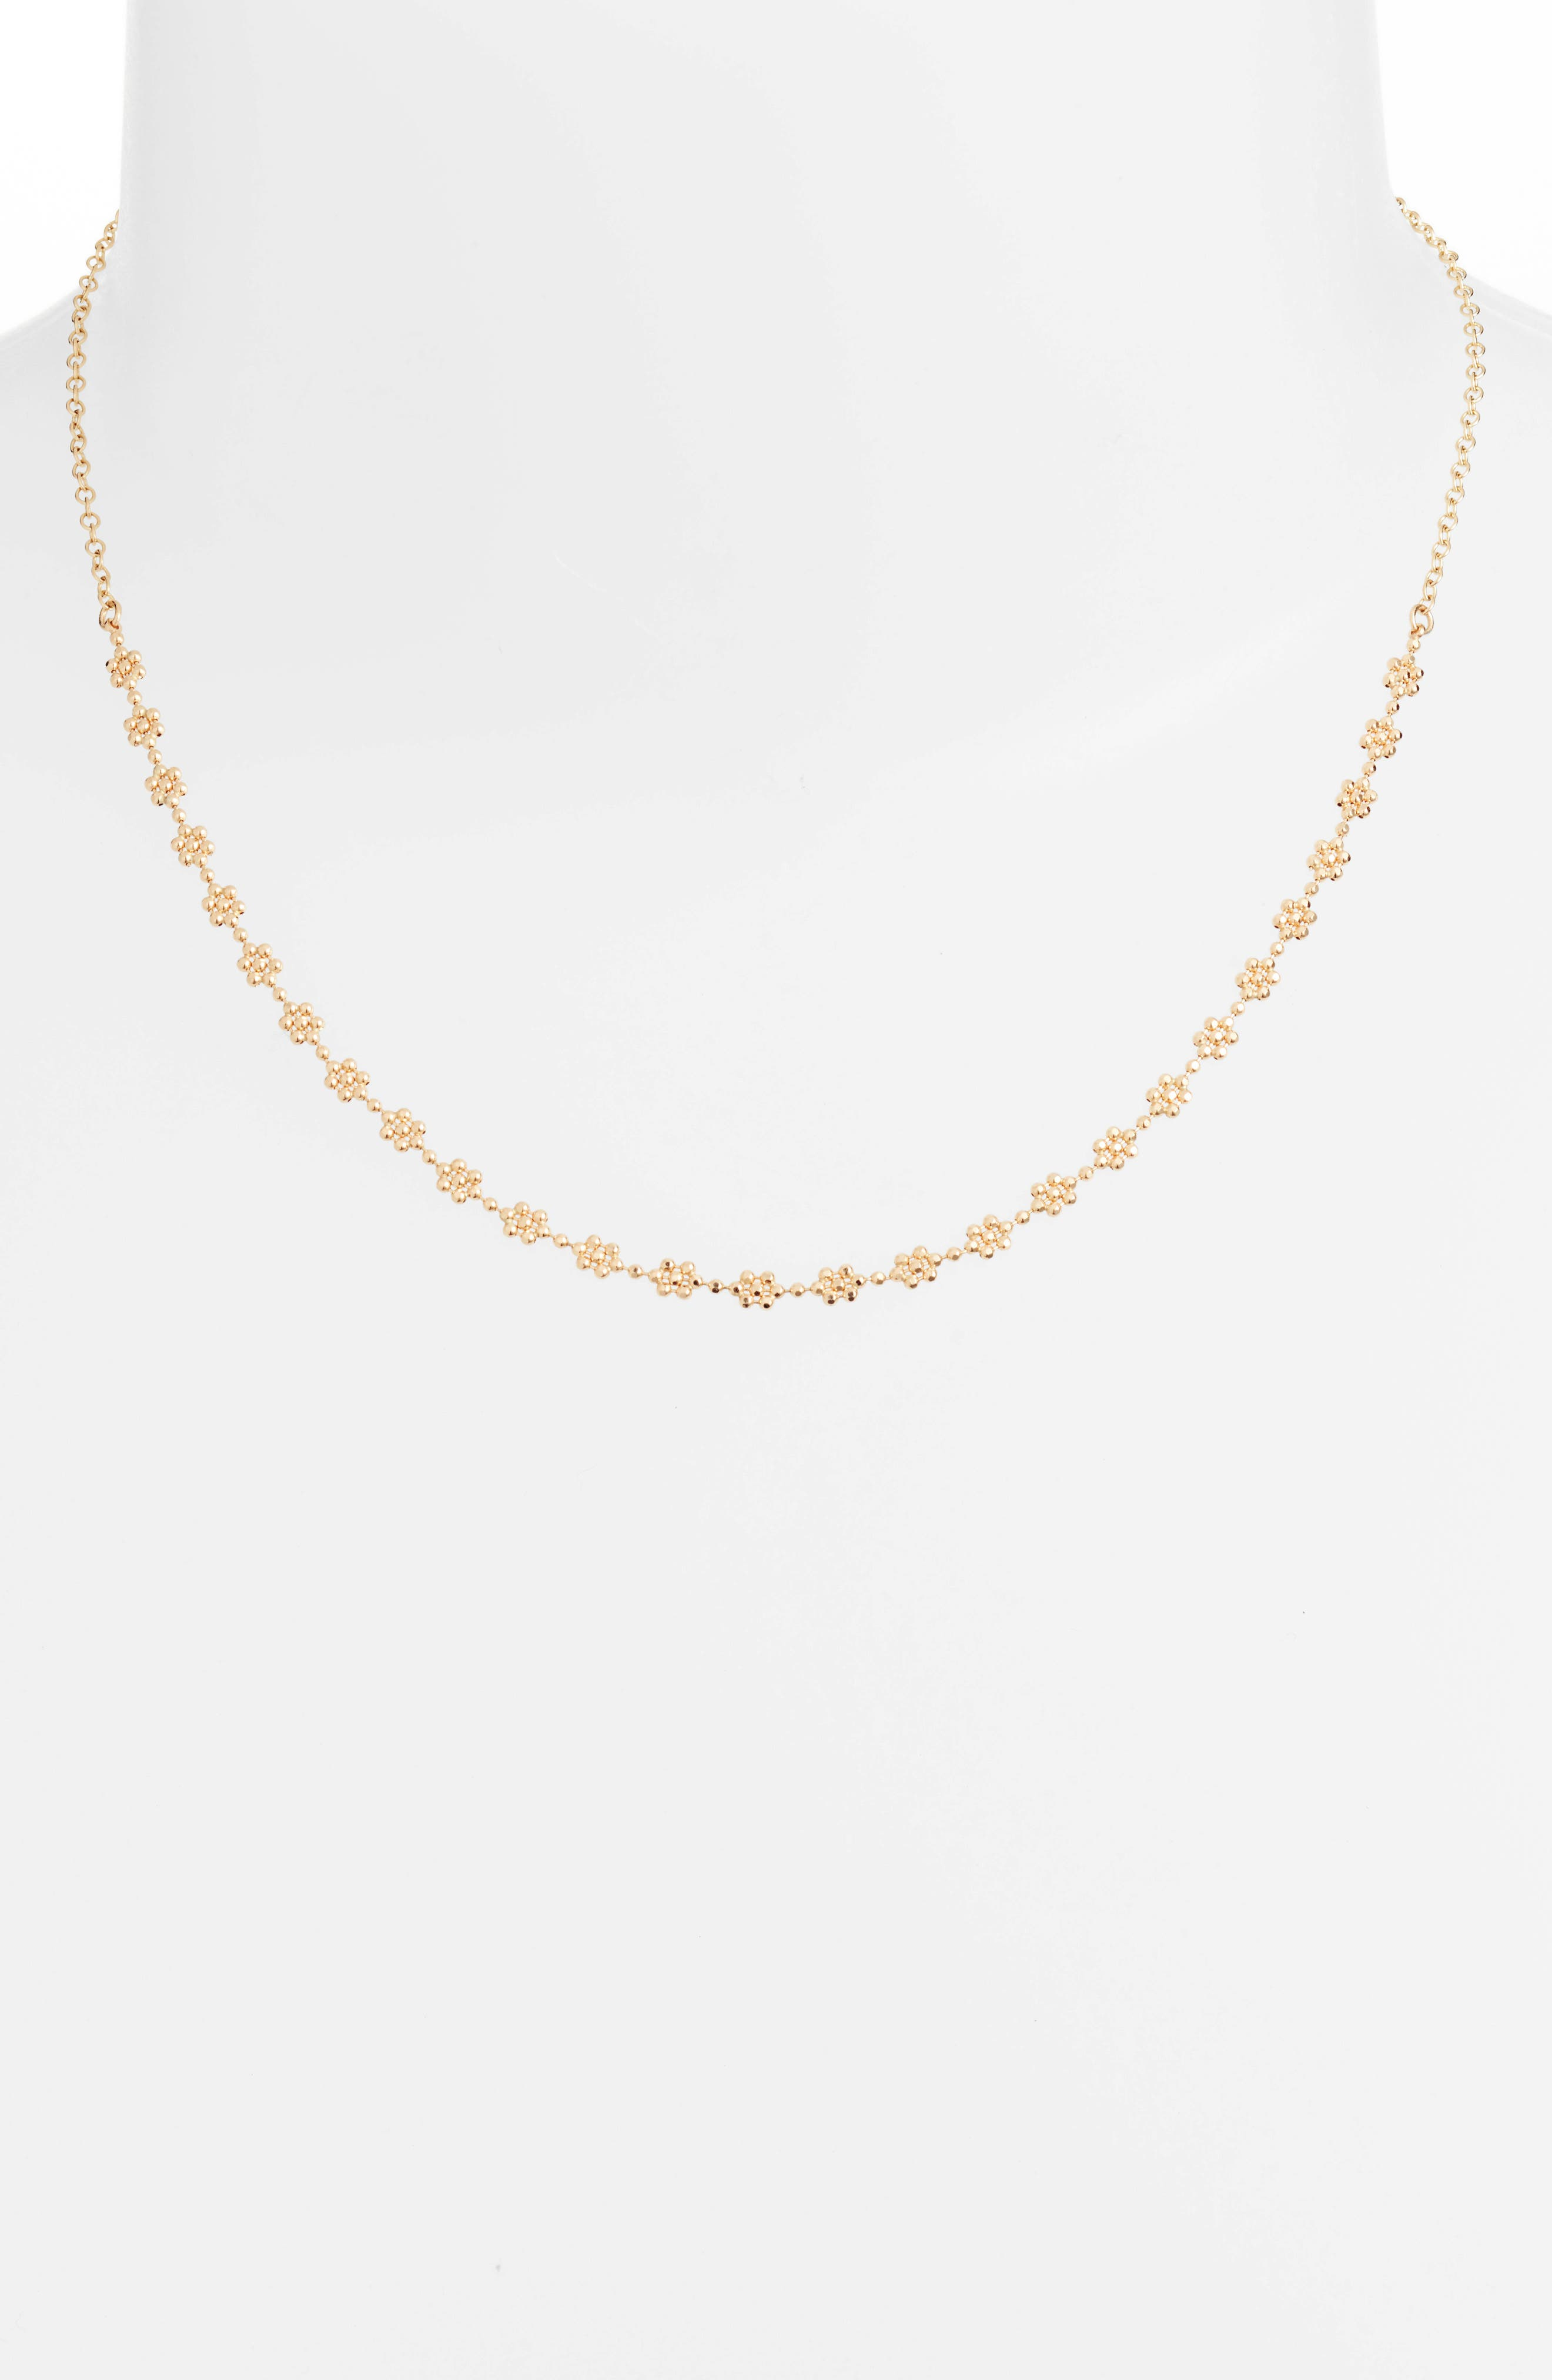 Shimmer Flower Choker Necklace,                             Alternate thumbnail 2, color,                             YELLOW GOLD